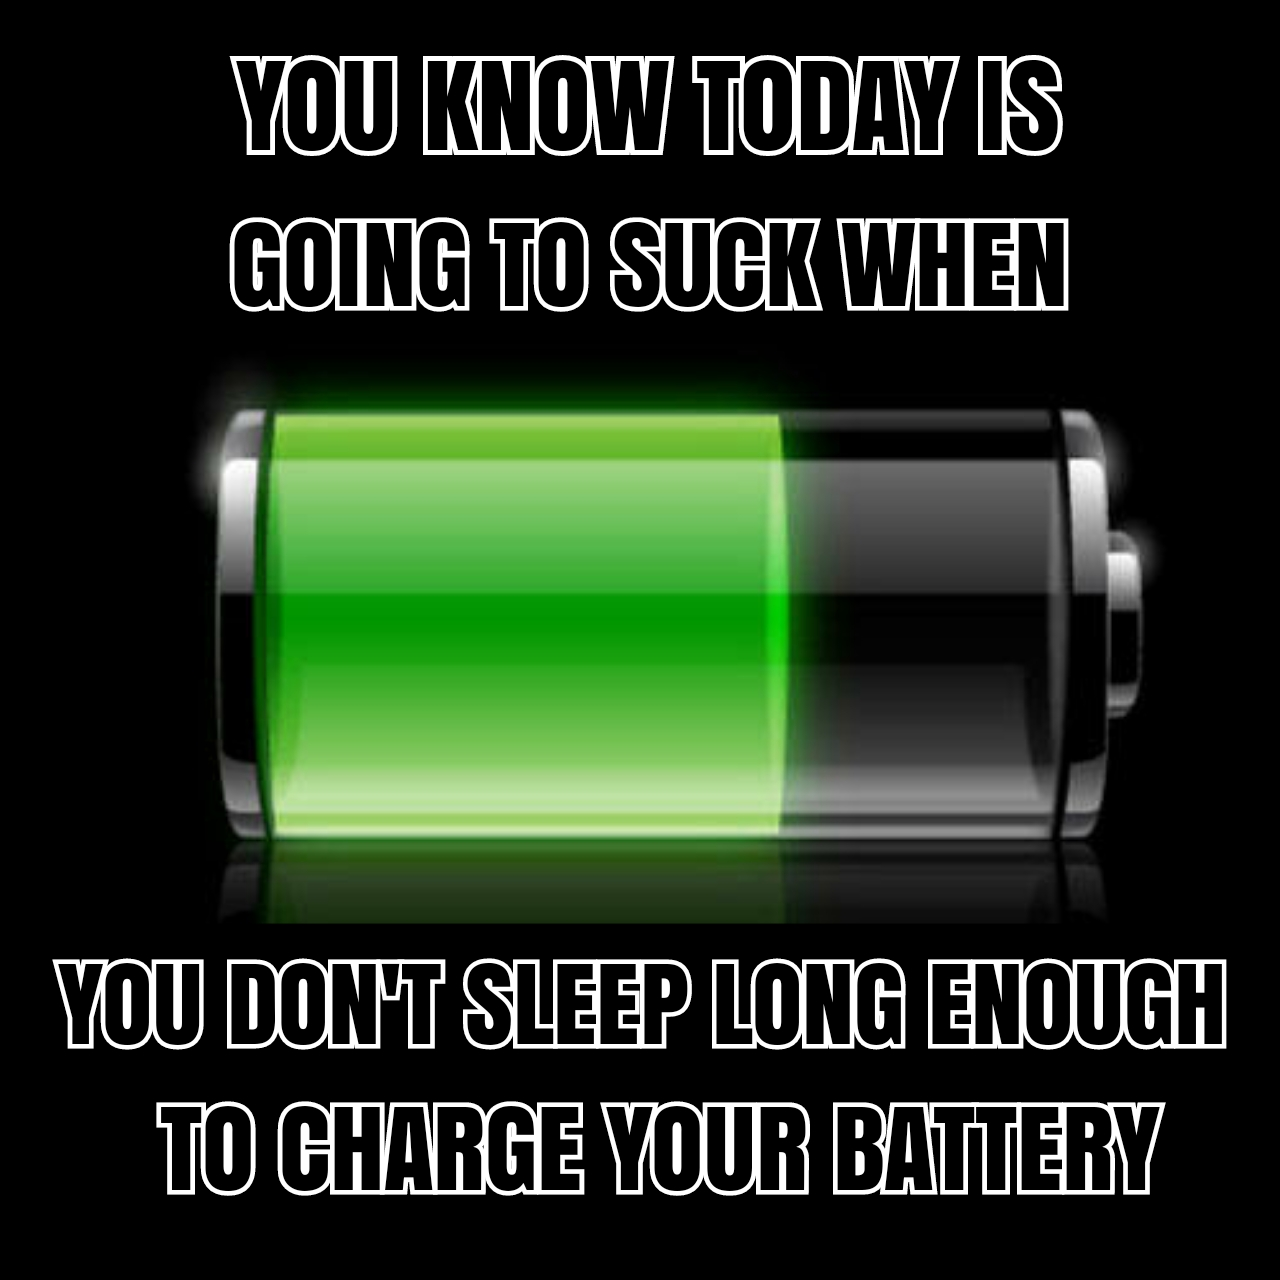 6 - When you sleep so little, your phone didn't have enough time to full charge up.